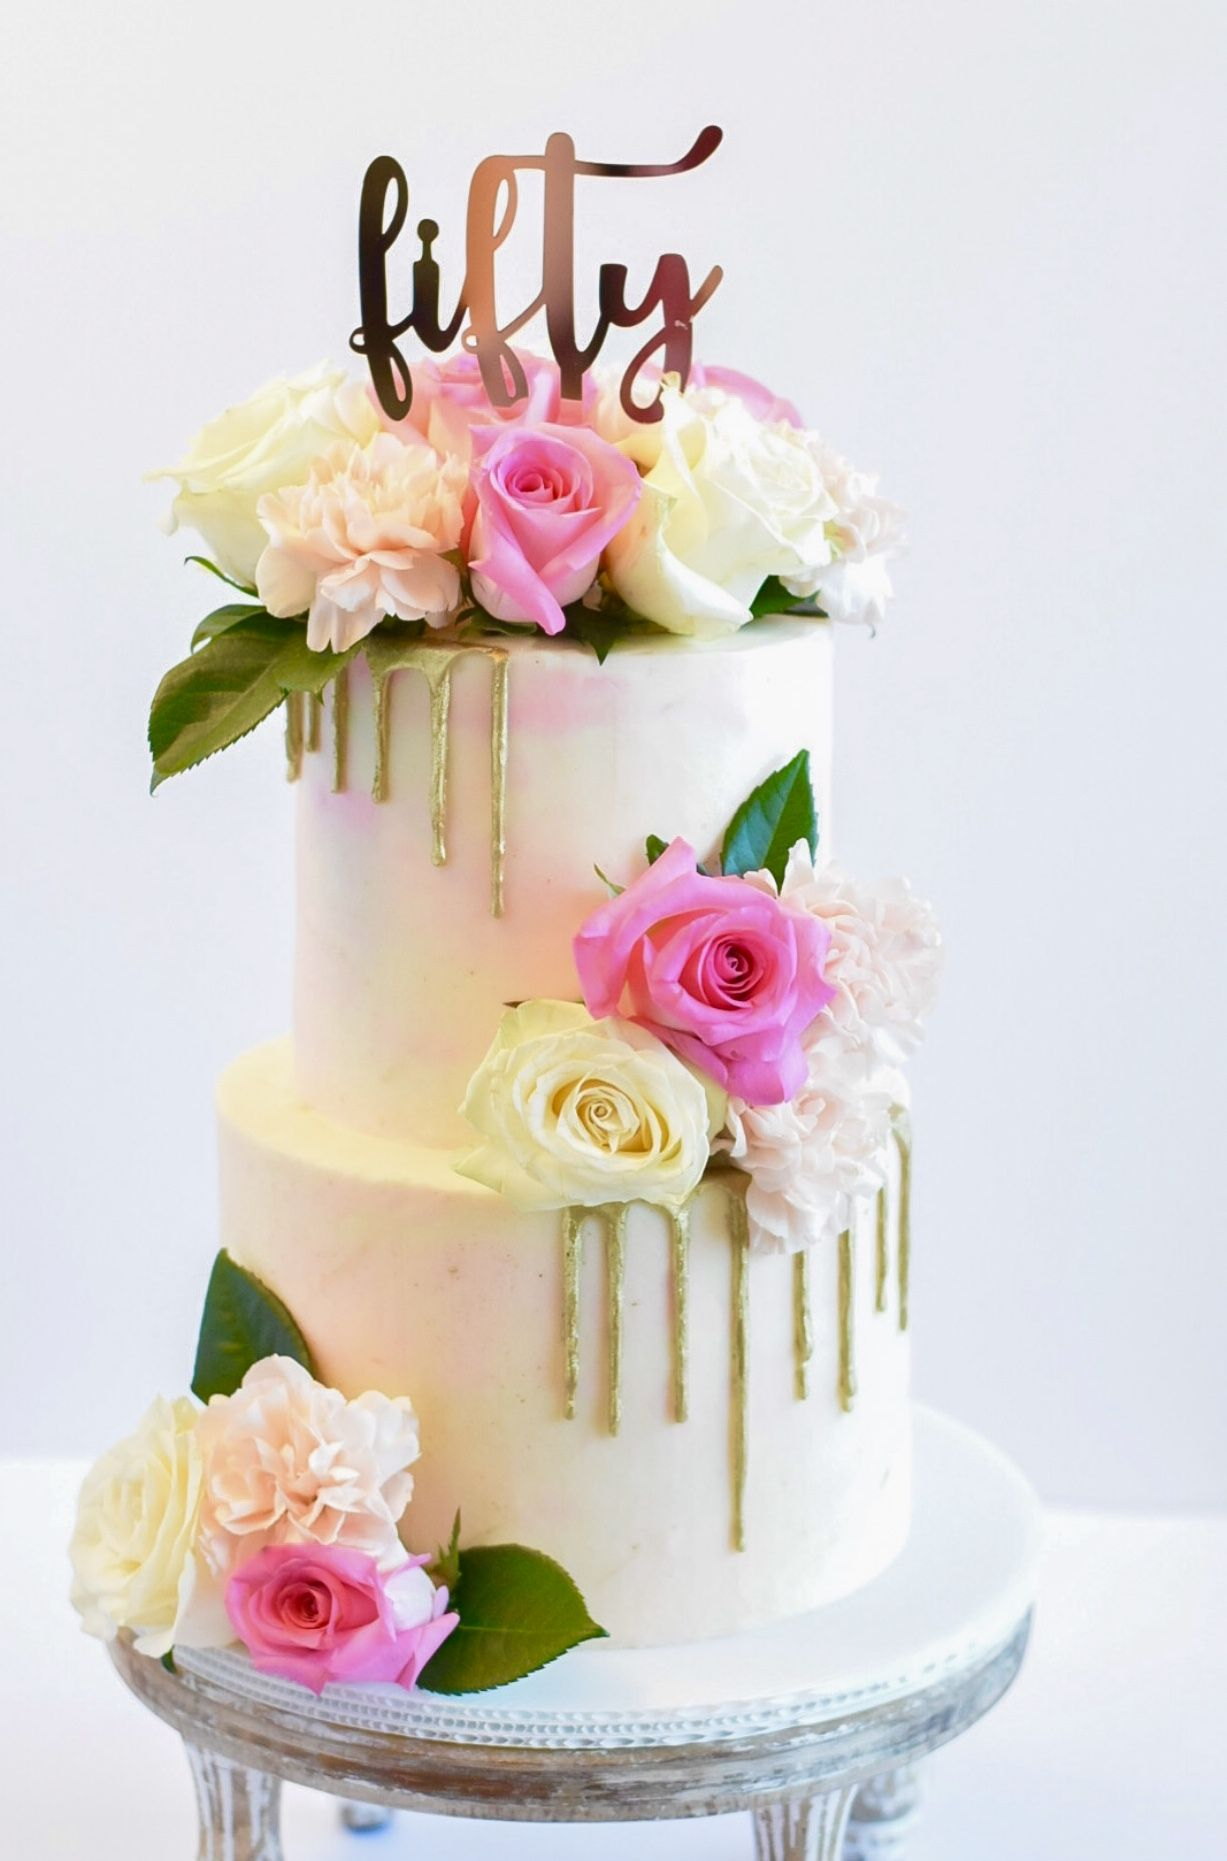 Gold Drip Cake With Fresh Flowers 50th Birthday Cake Rose Gold Cake Topper In 2020 Fresh Flower Cake Rose Gold Cake Topper 50th Birthday Cake